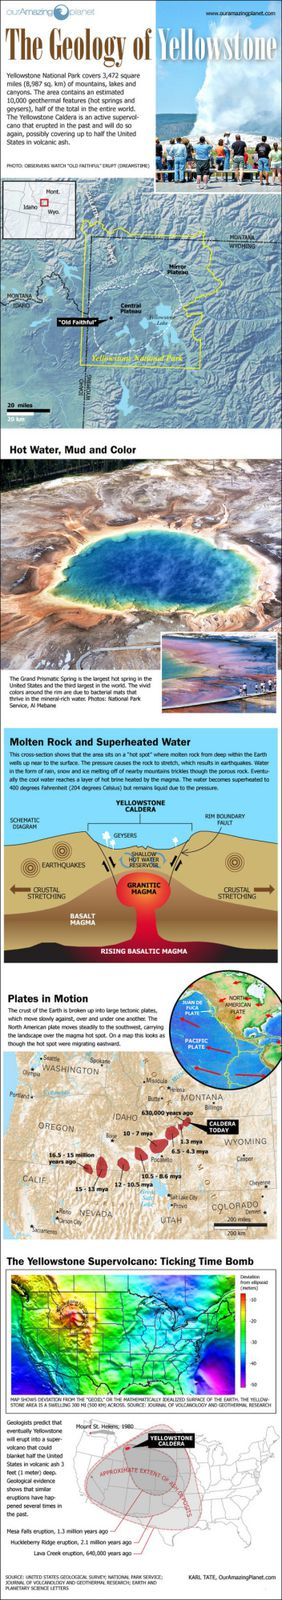 yellowstone-national-park-old-faithful-geyser-eruption-supe